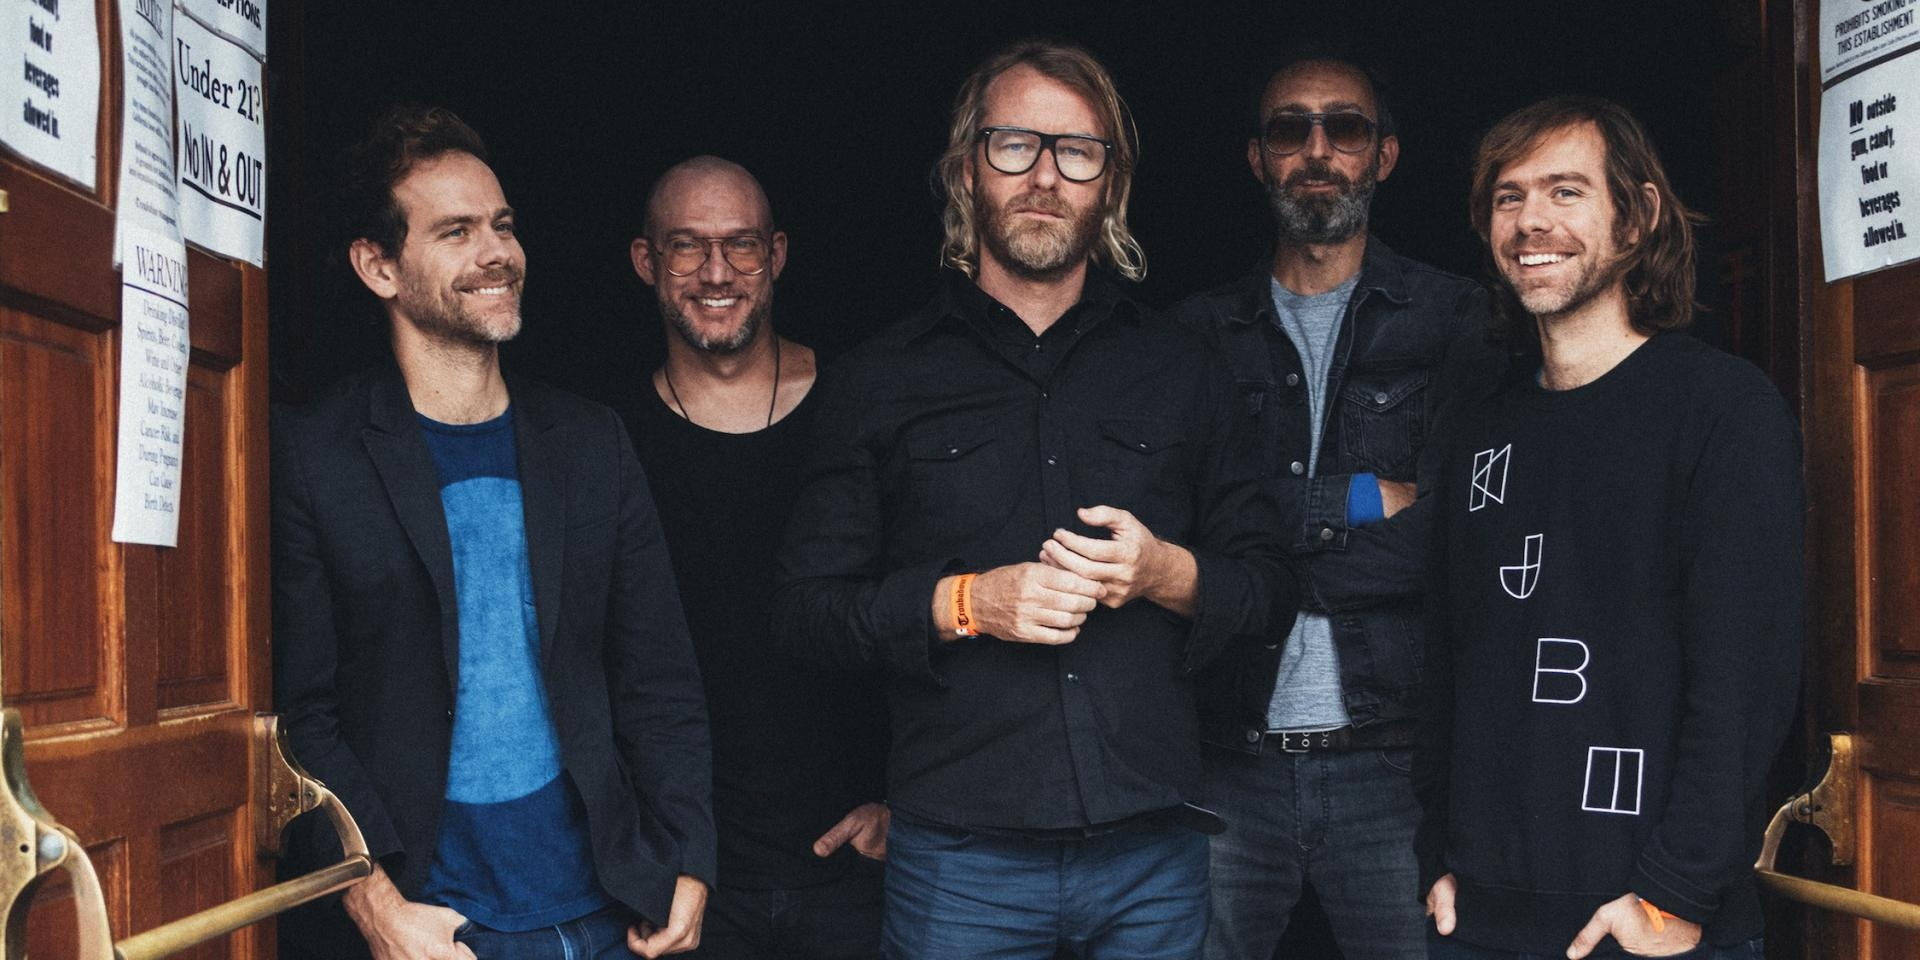 The National shares short film, I Am Easy to Find, featuring music from upcoming album – watch